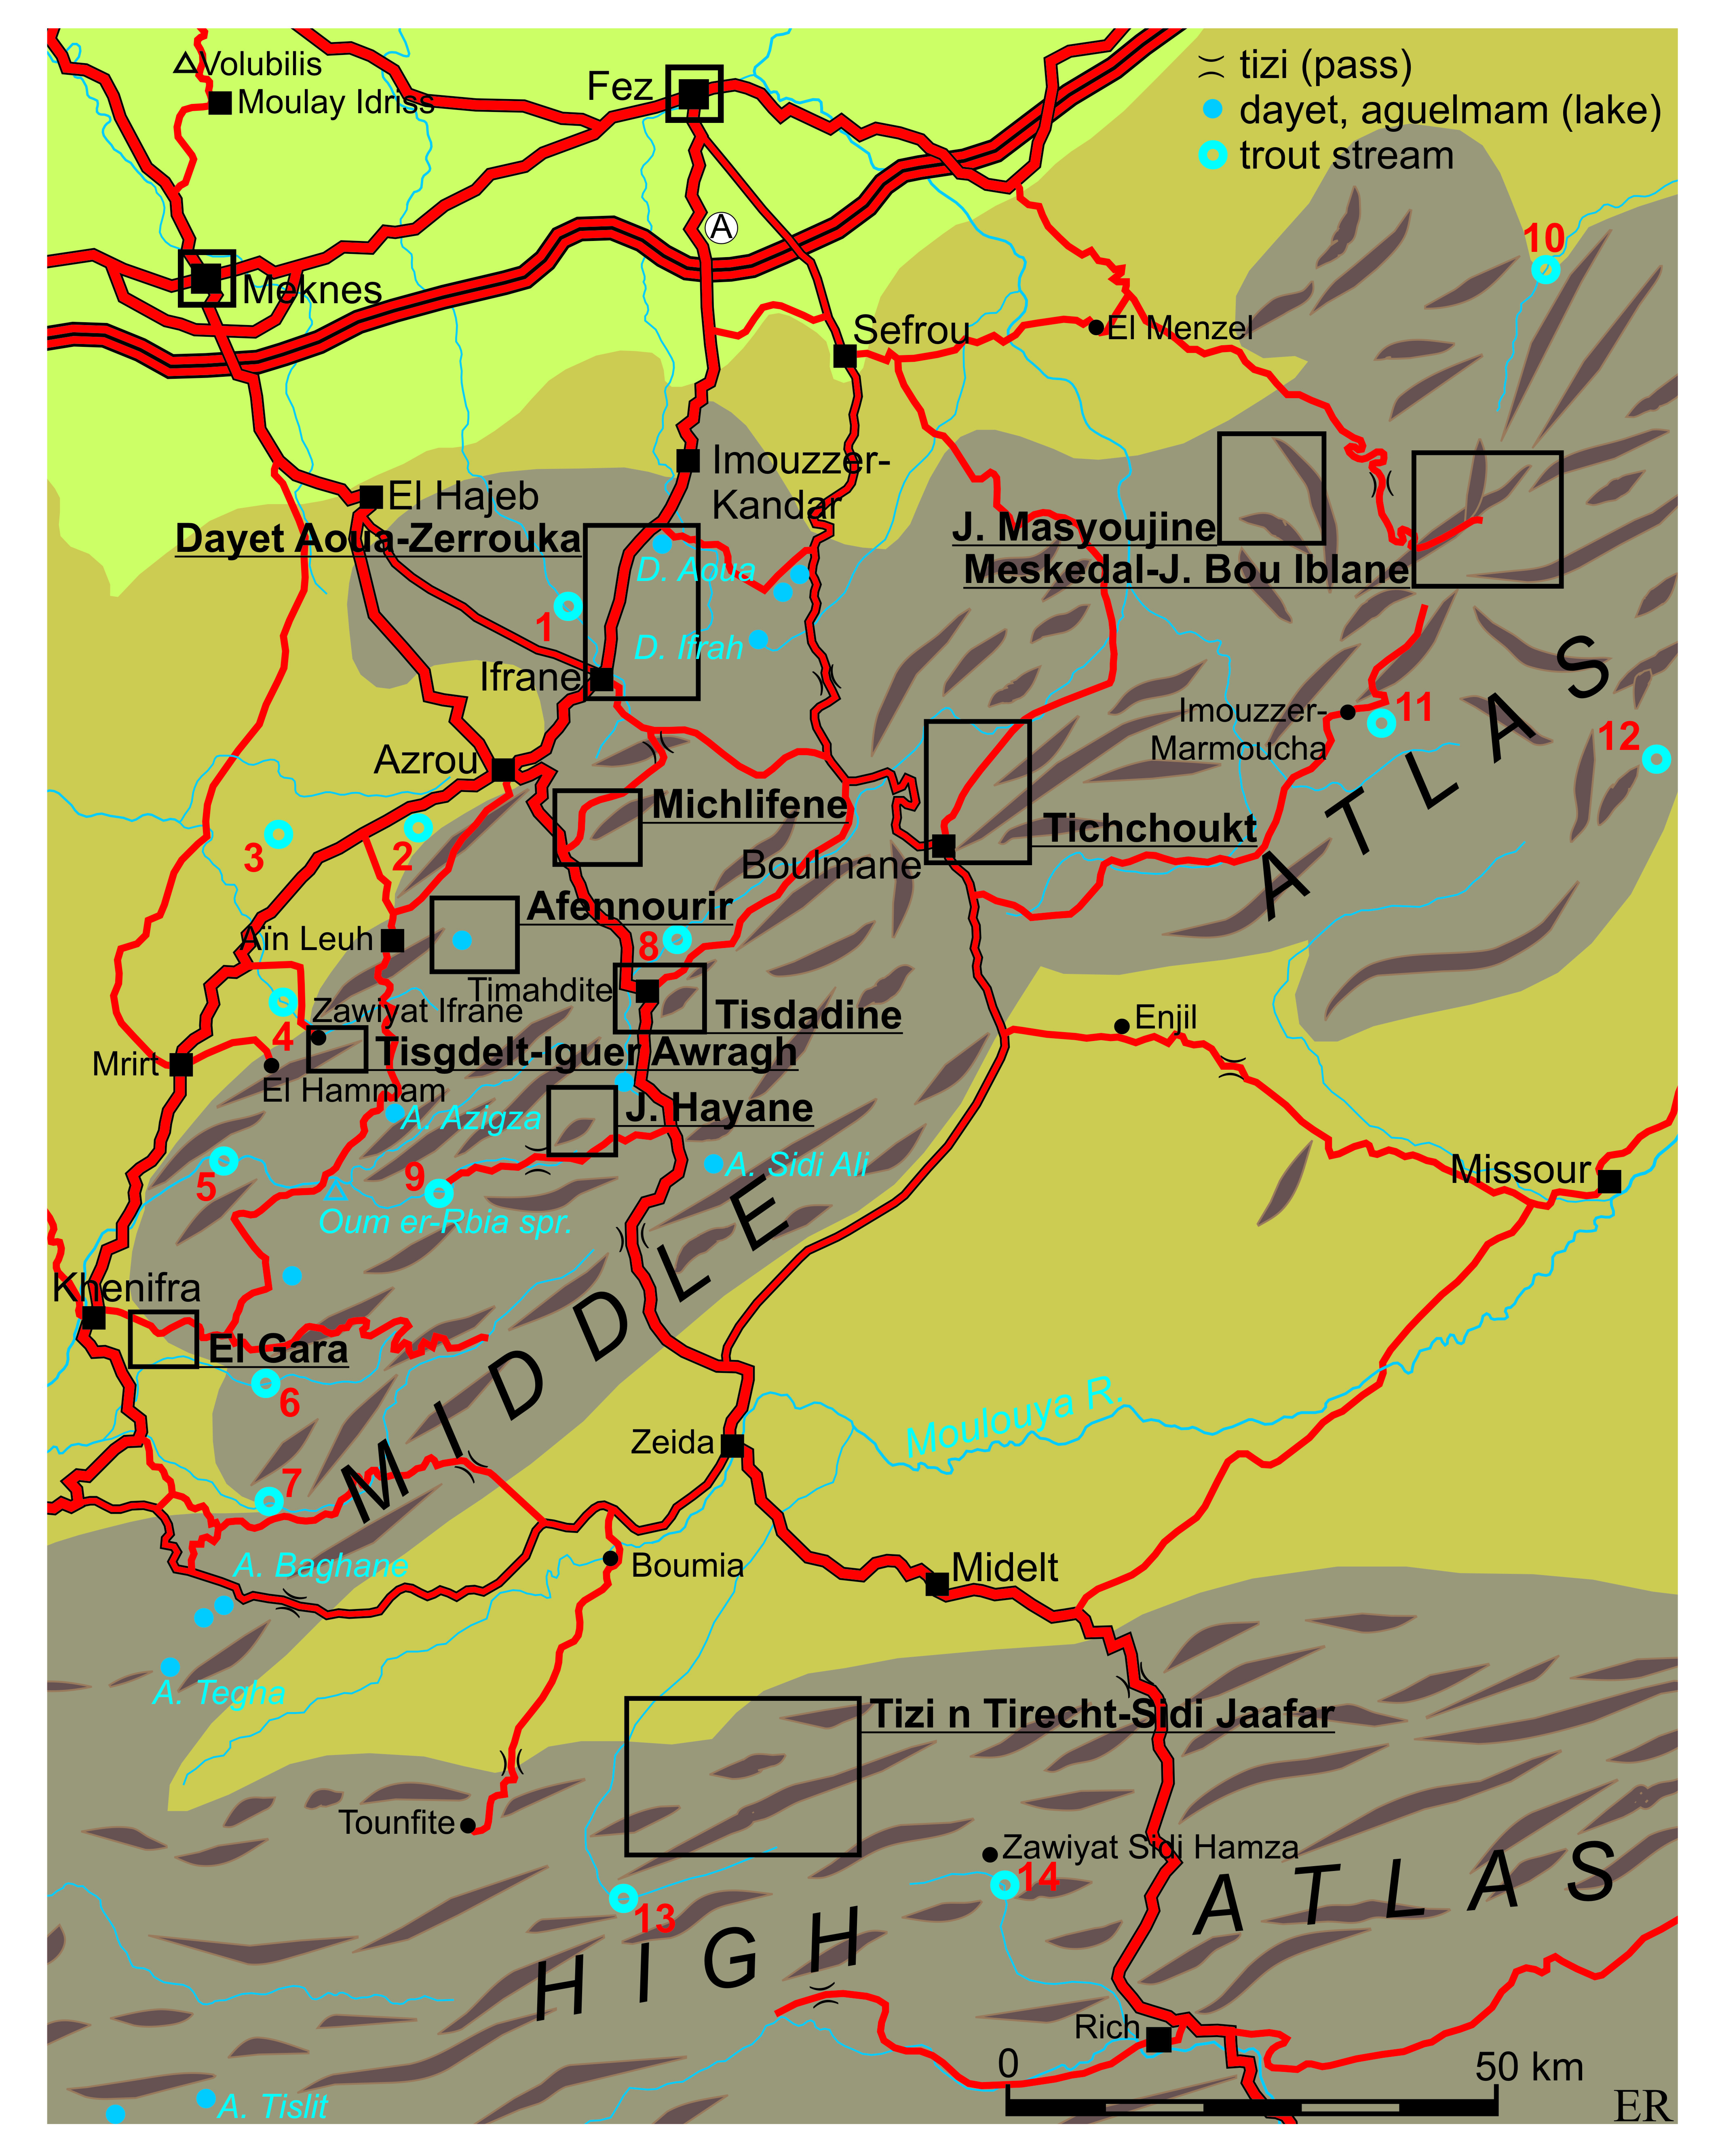 Cirque de Jaffar Fez and the Middle Atlas, Hiking in the Middle Atlas | Eric Ross, academic